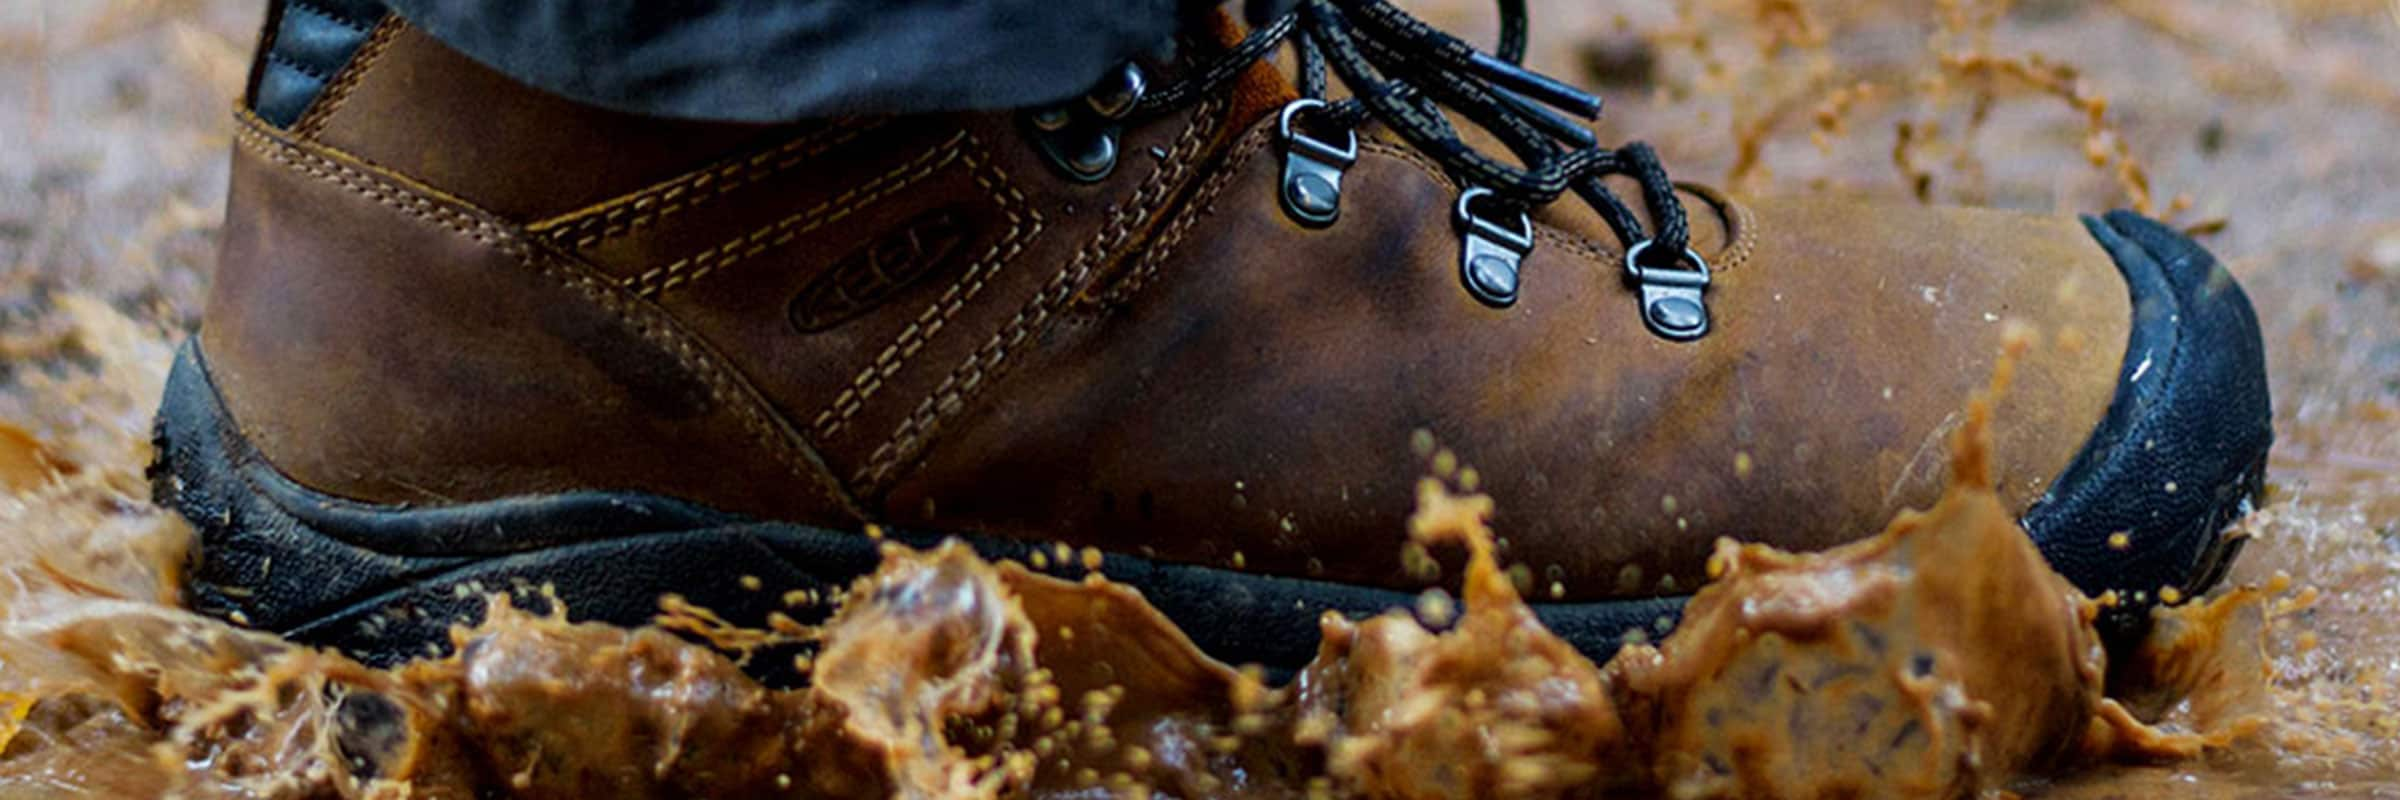 Keen. Keen Men's Pyrenees Boots Reviewed